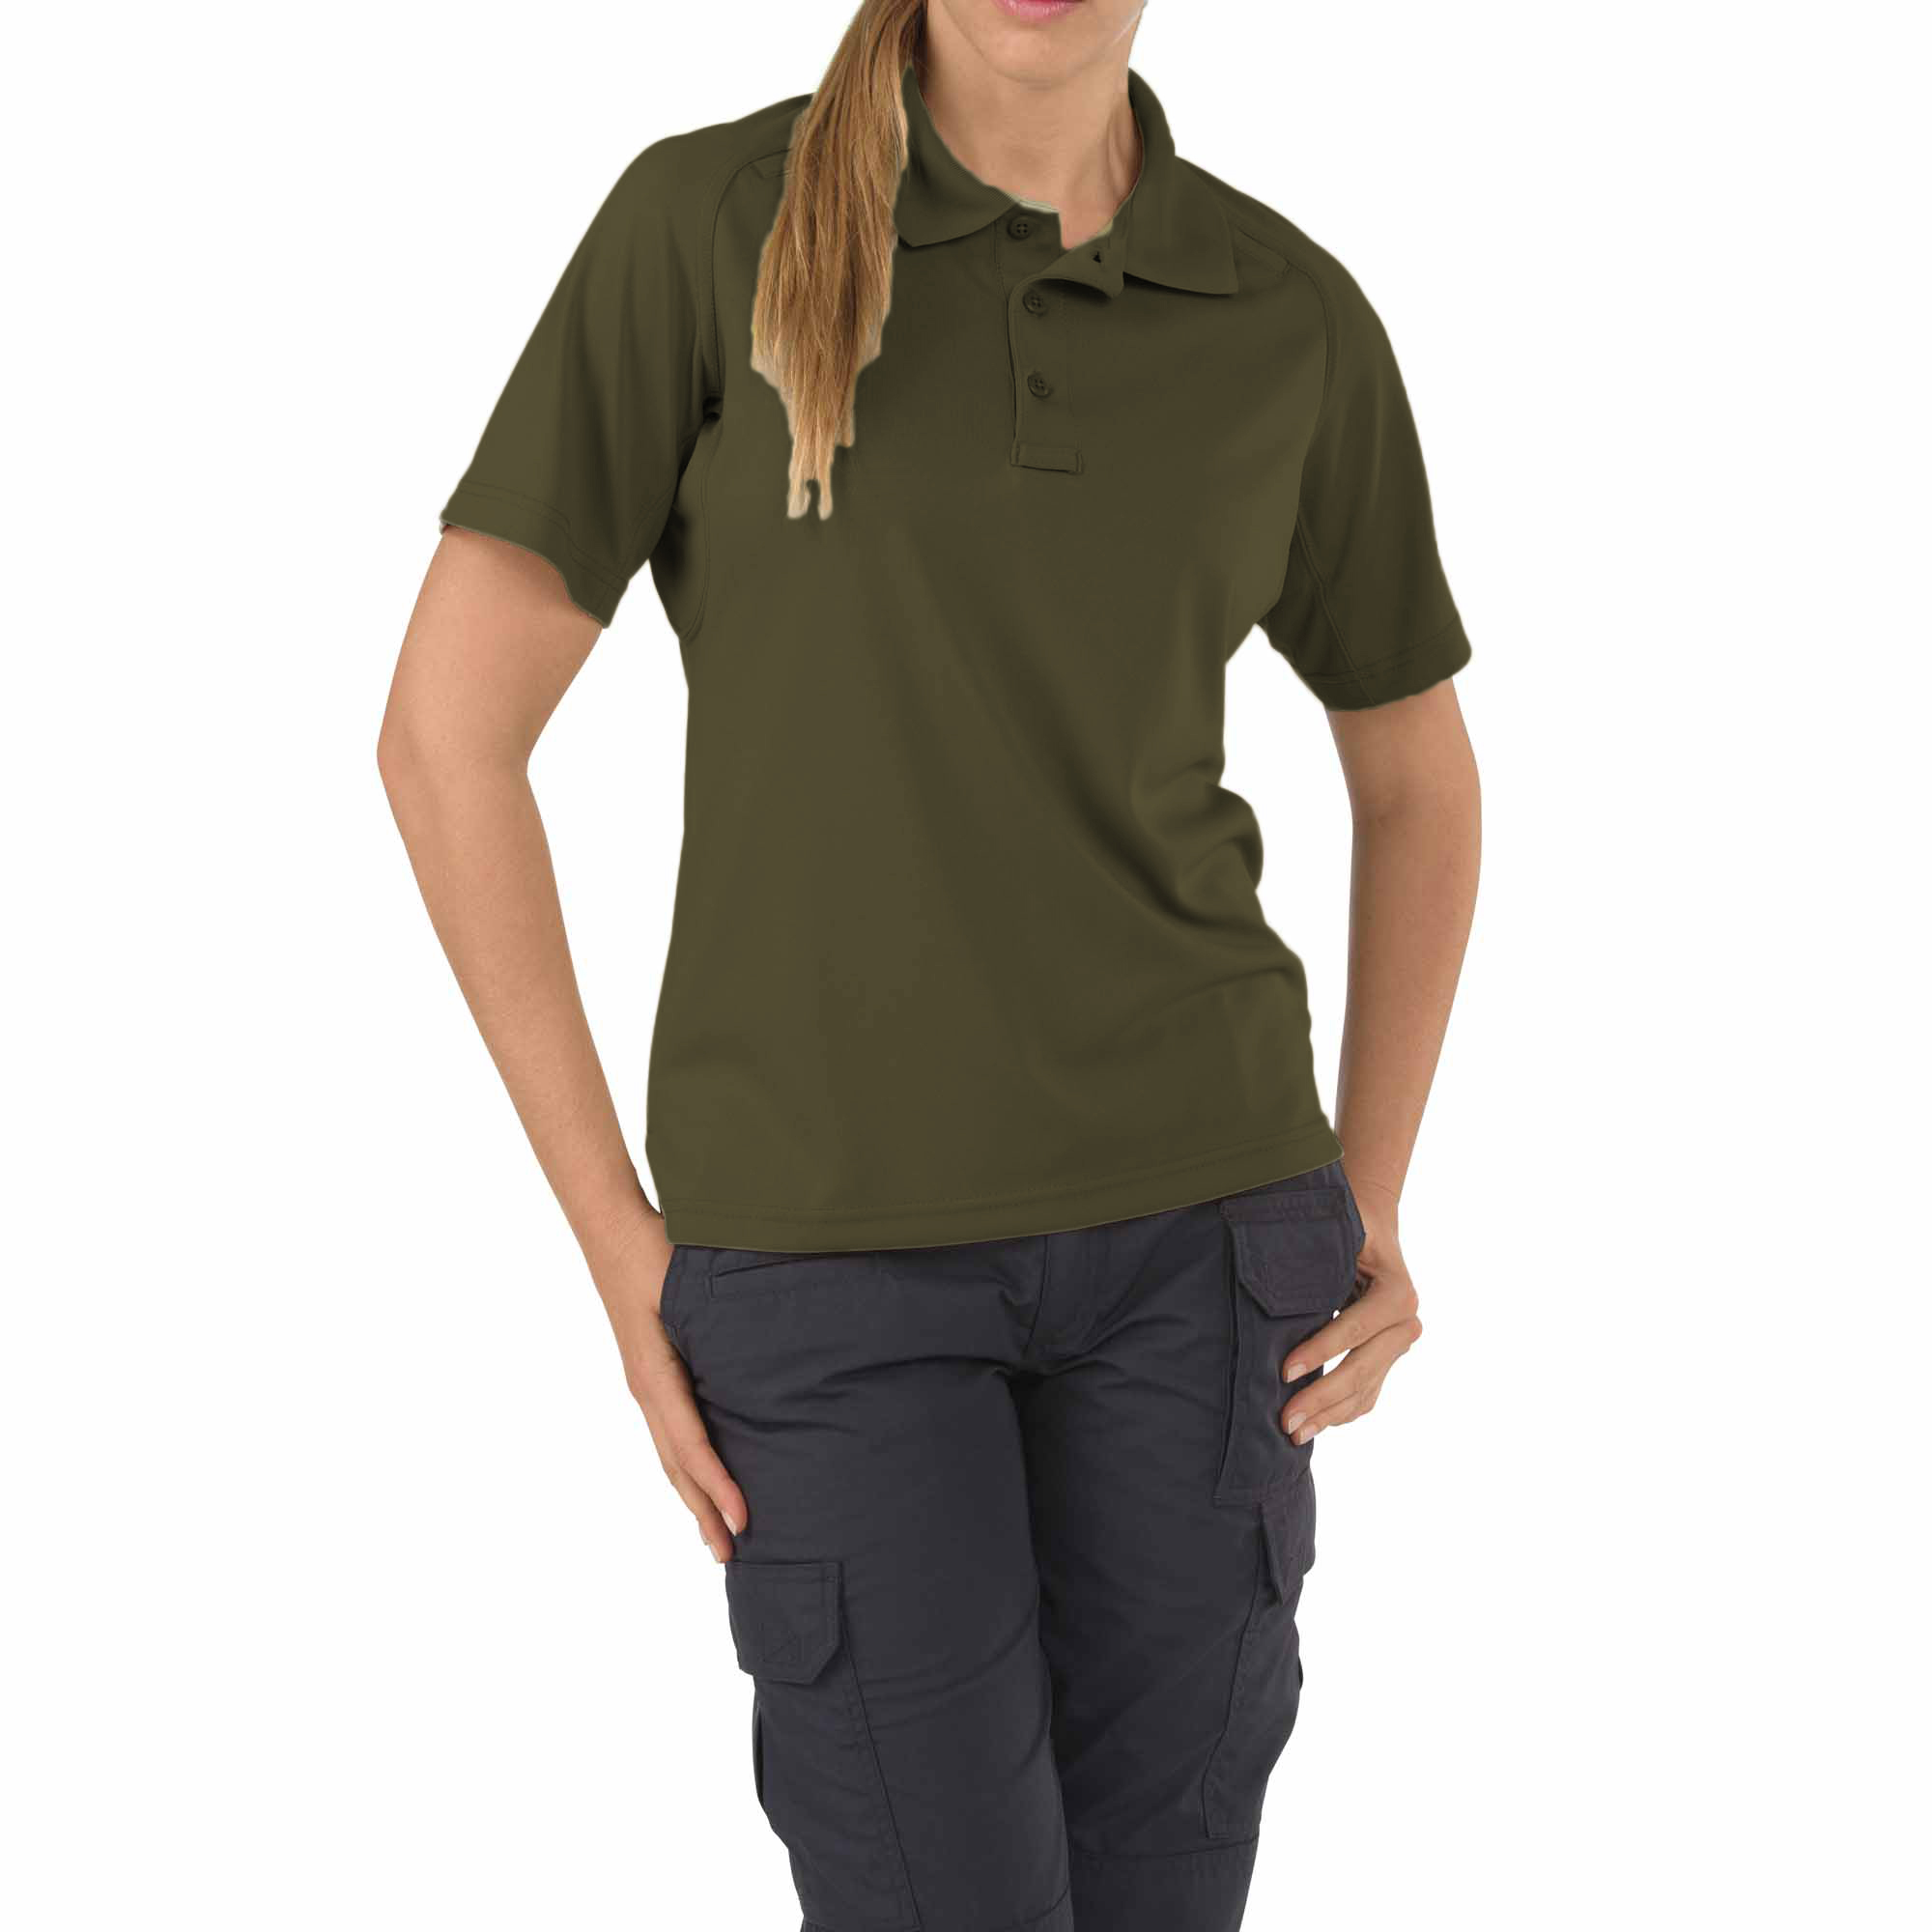 #61165 Women's Performance Short Sleeve Polo, TDU Green, XL by 5.11 Tactical